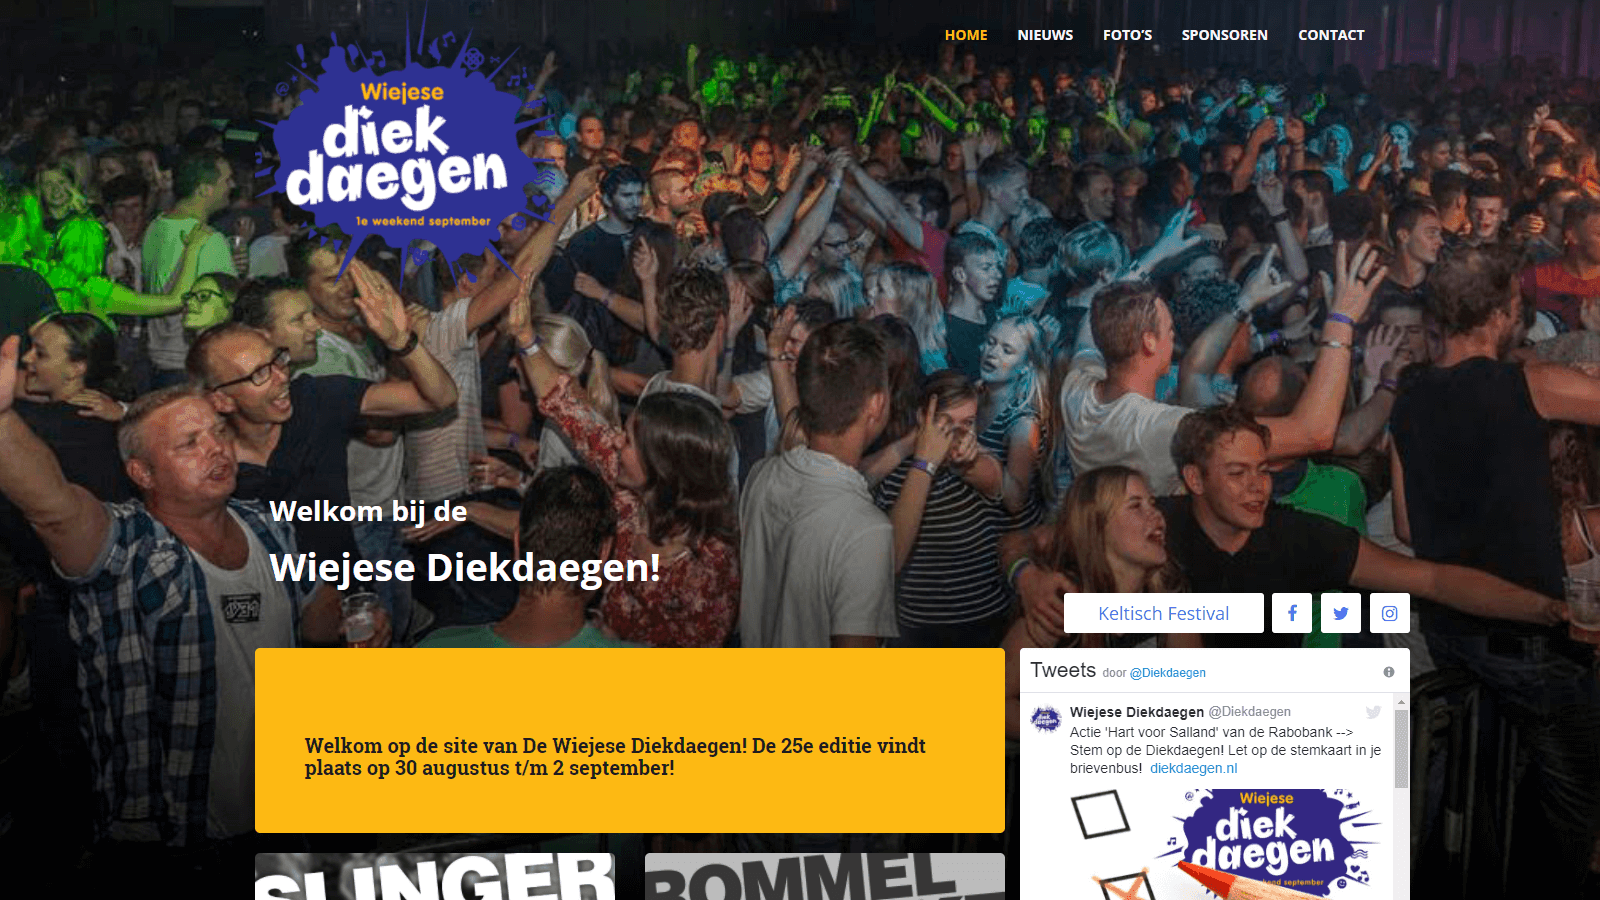 Website diekdaegen  - diekdaegen - Websites